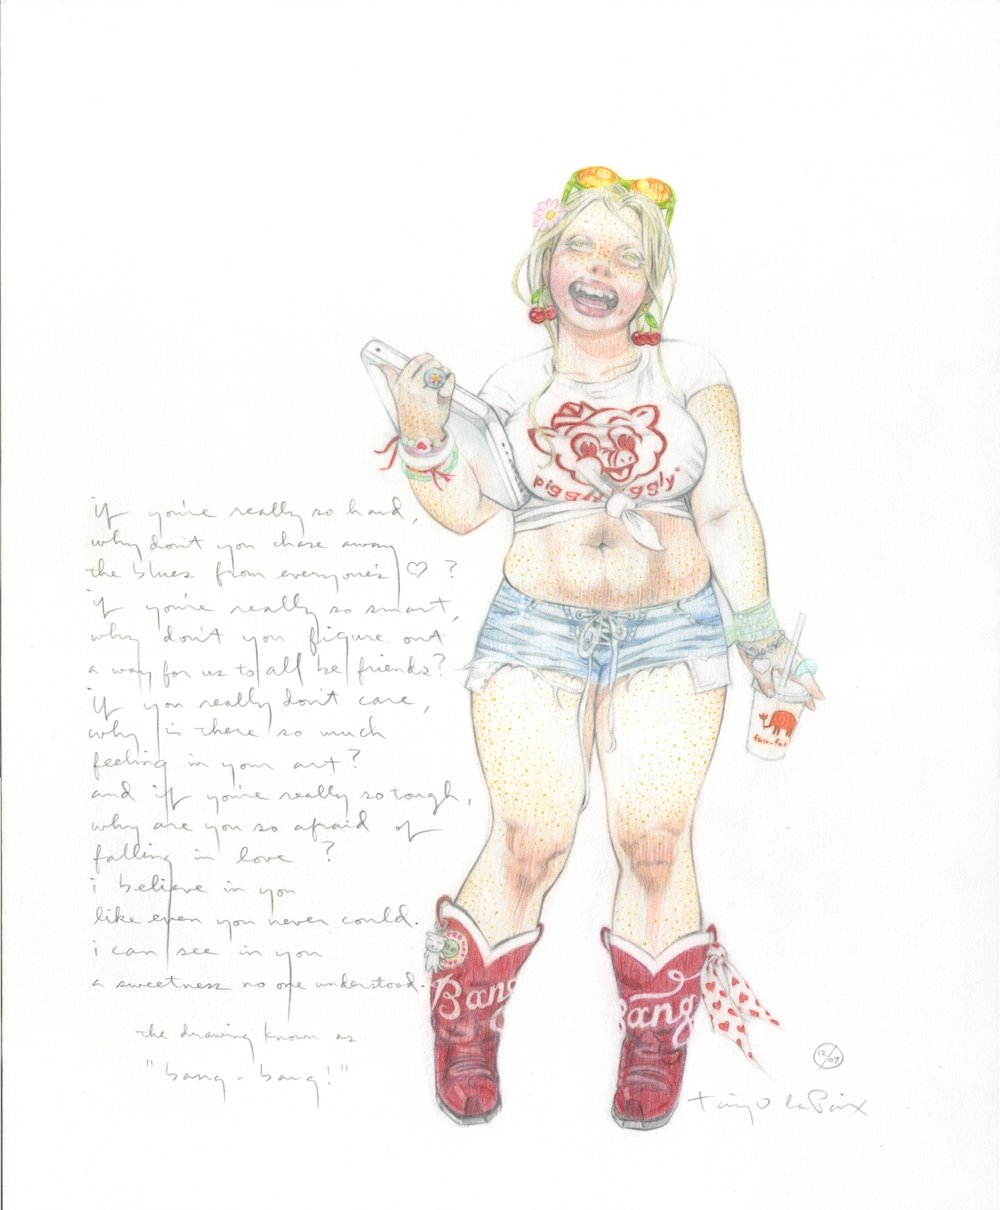 Bang-bang!, 2007, pencil on paper, 13 x 10 inches, courtesy of Betty Clark http://www.bettyclarkpainter.com/